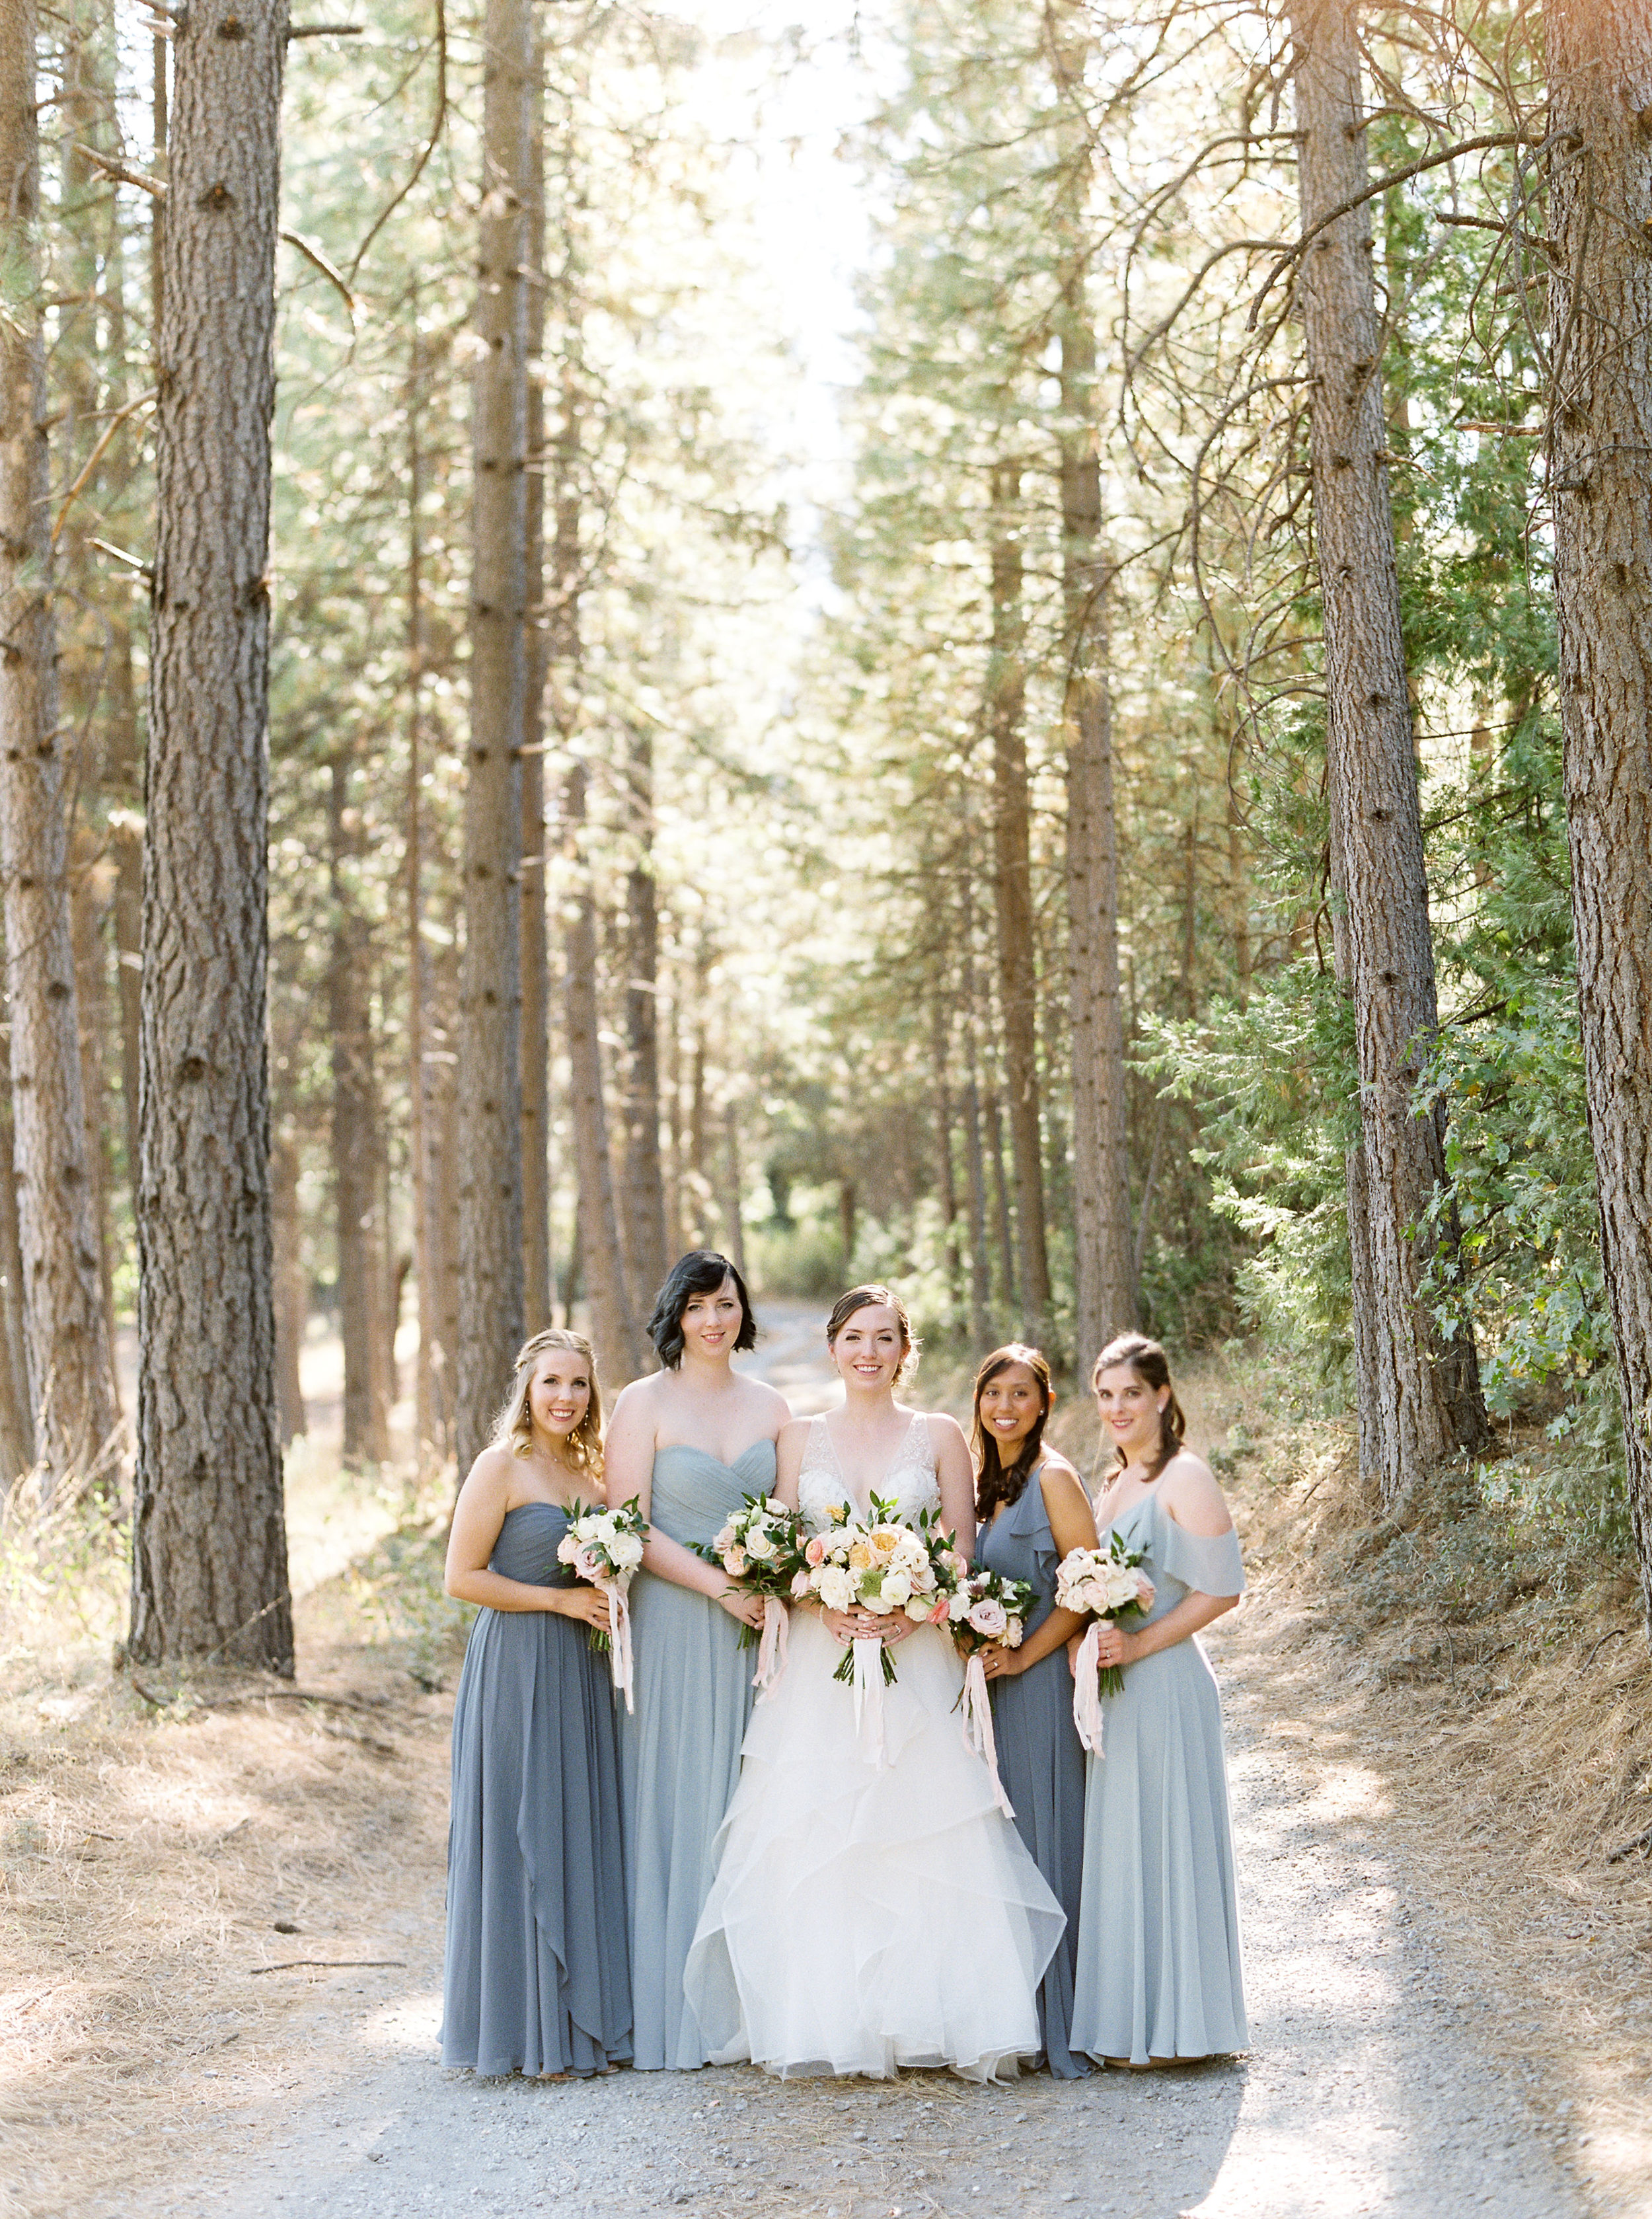 Forest-house-lodge-wedding-foresthill-california-14.jpg